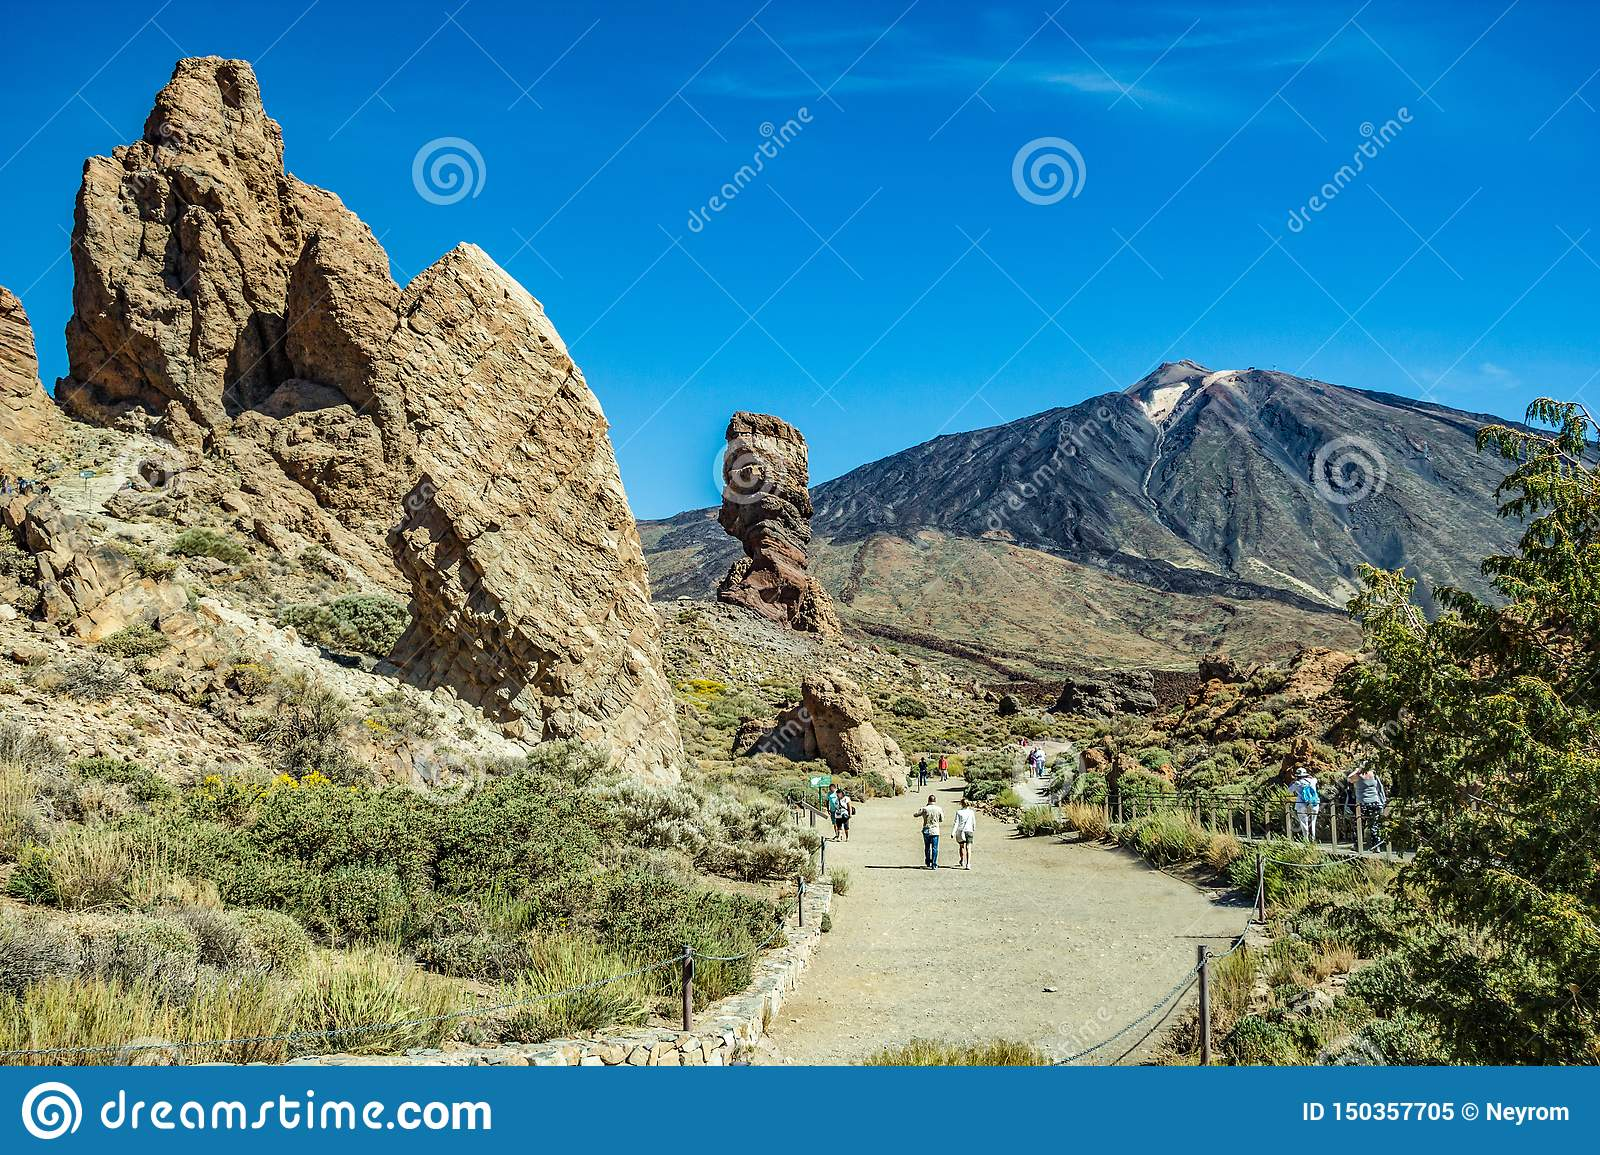 Most recognizable view of Mount Teide on Tenerife. Beautiful landscape in the national park on Tenerife with the famous rock,